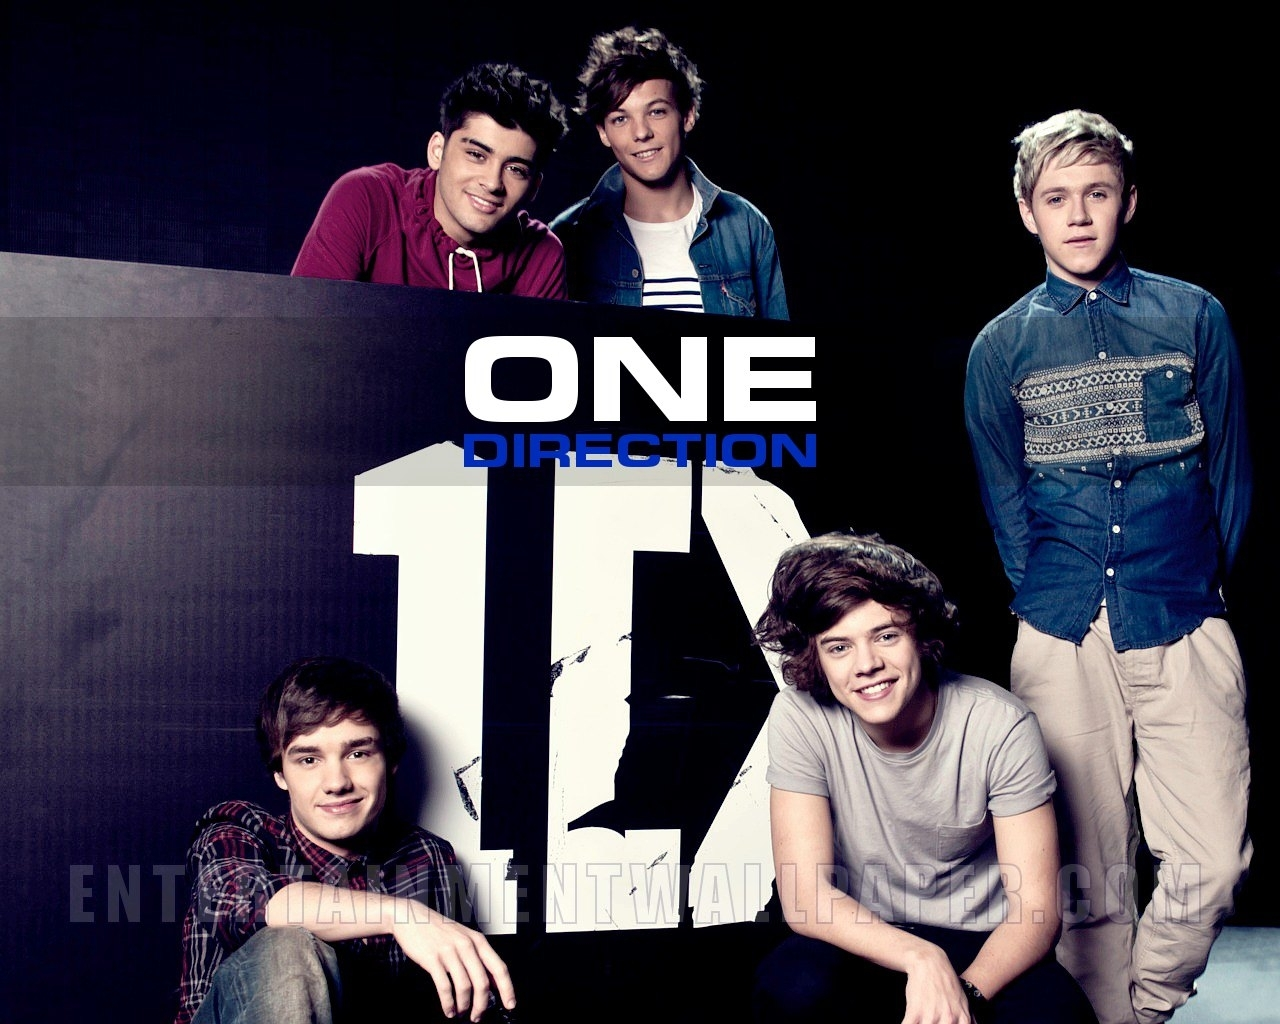 one direction free hd wallpapers 2014 | desktop backgrounds for free